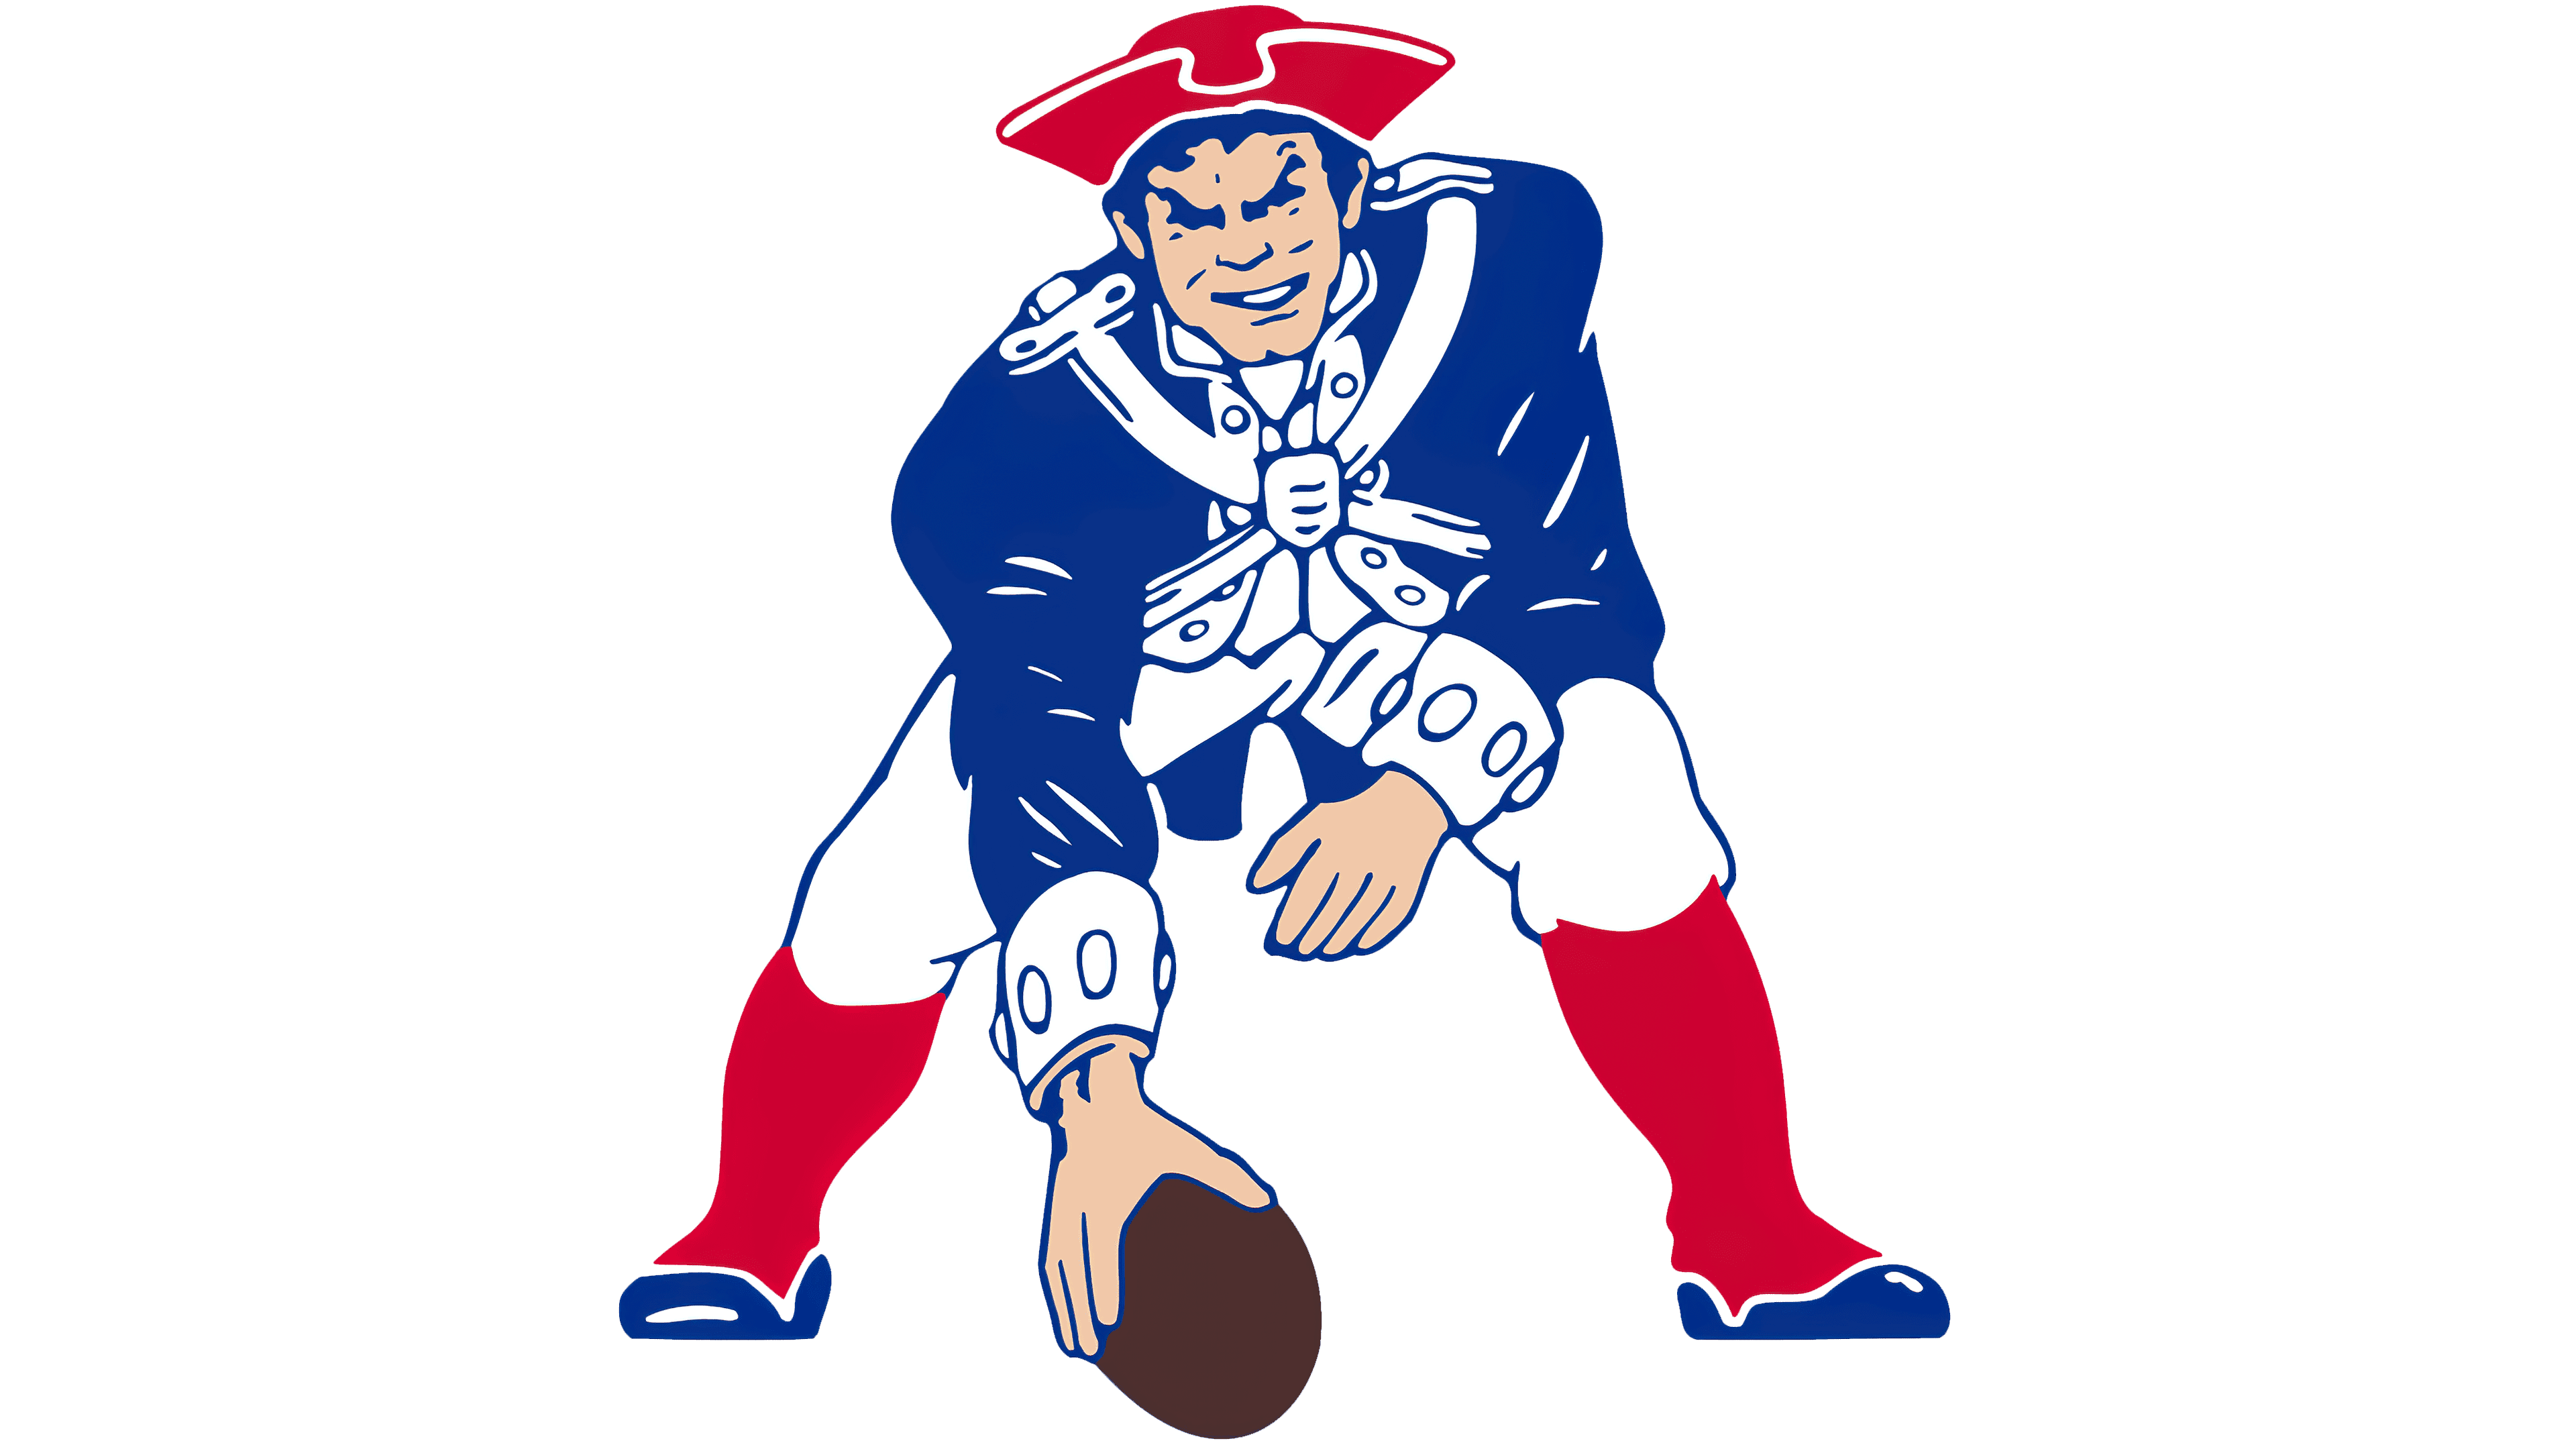 New England Patriots Logo   The most famous brands and ...